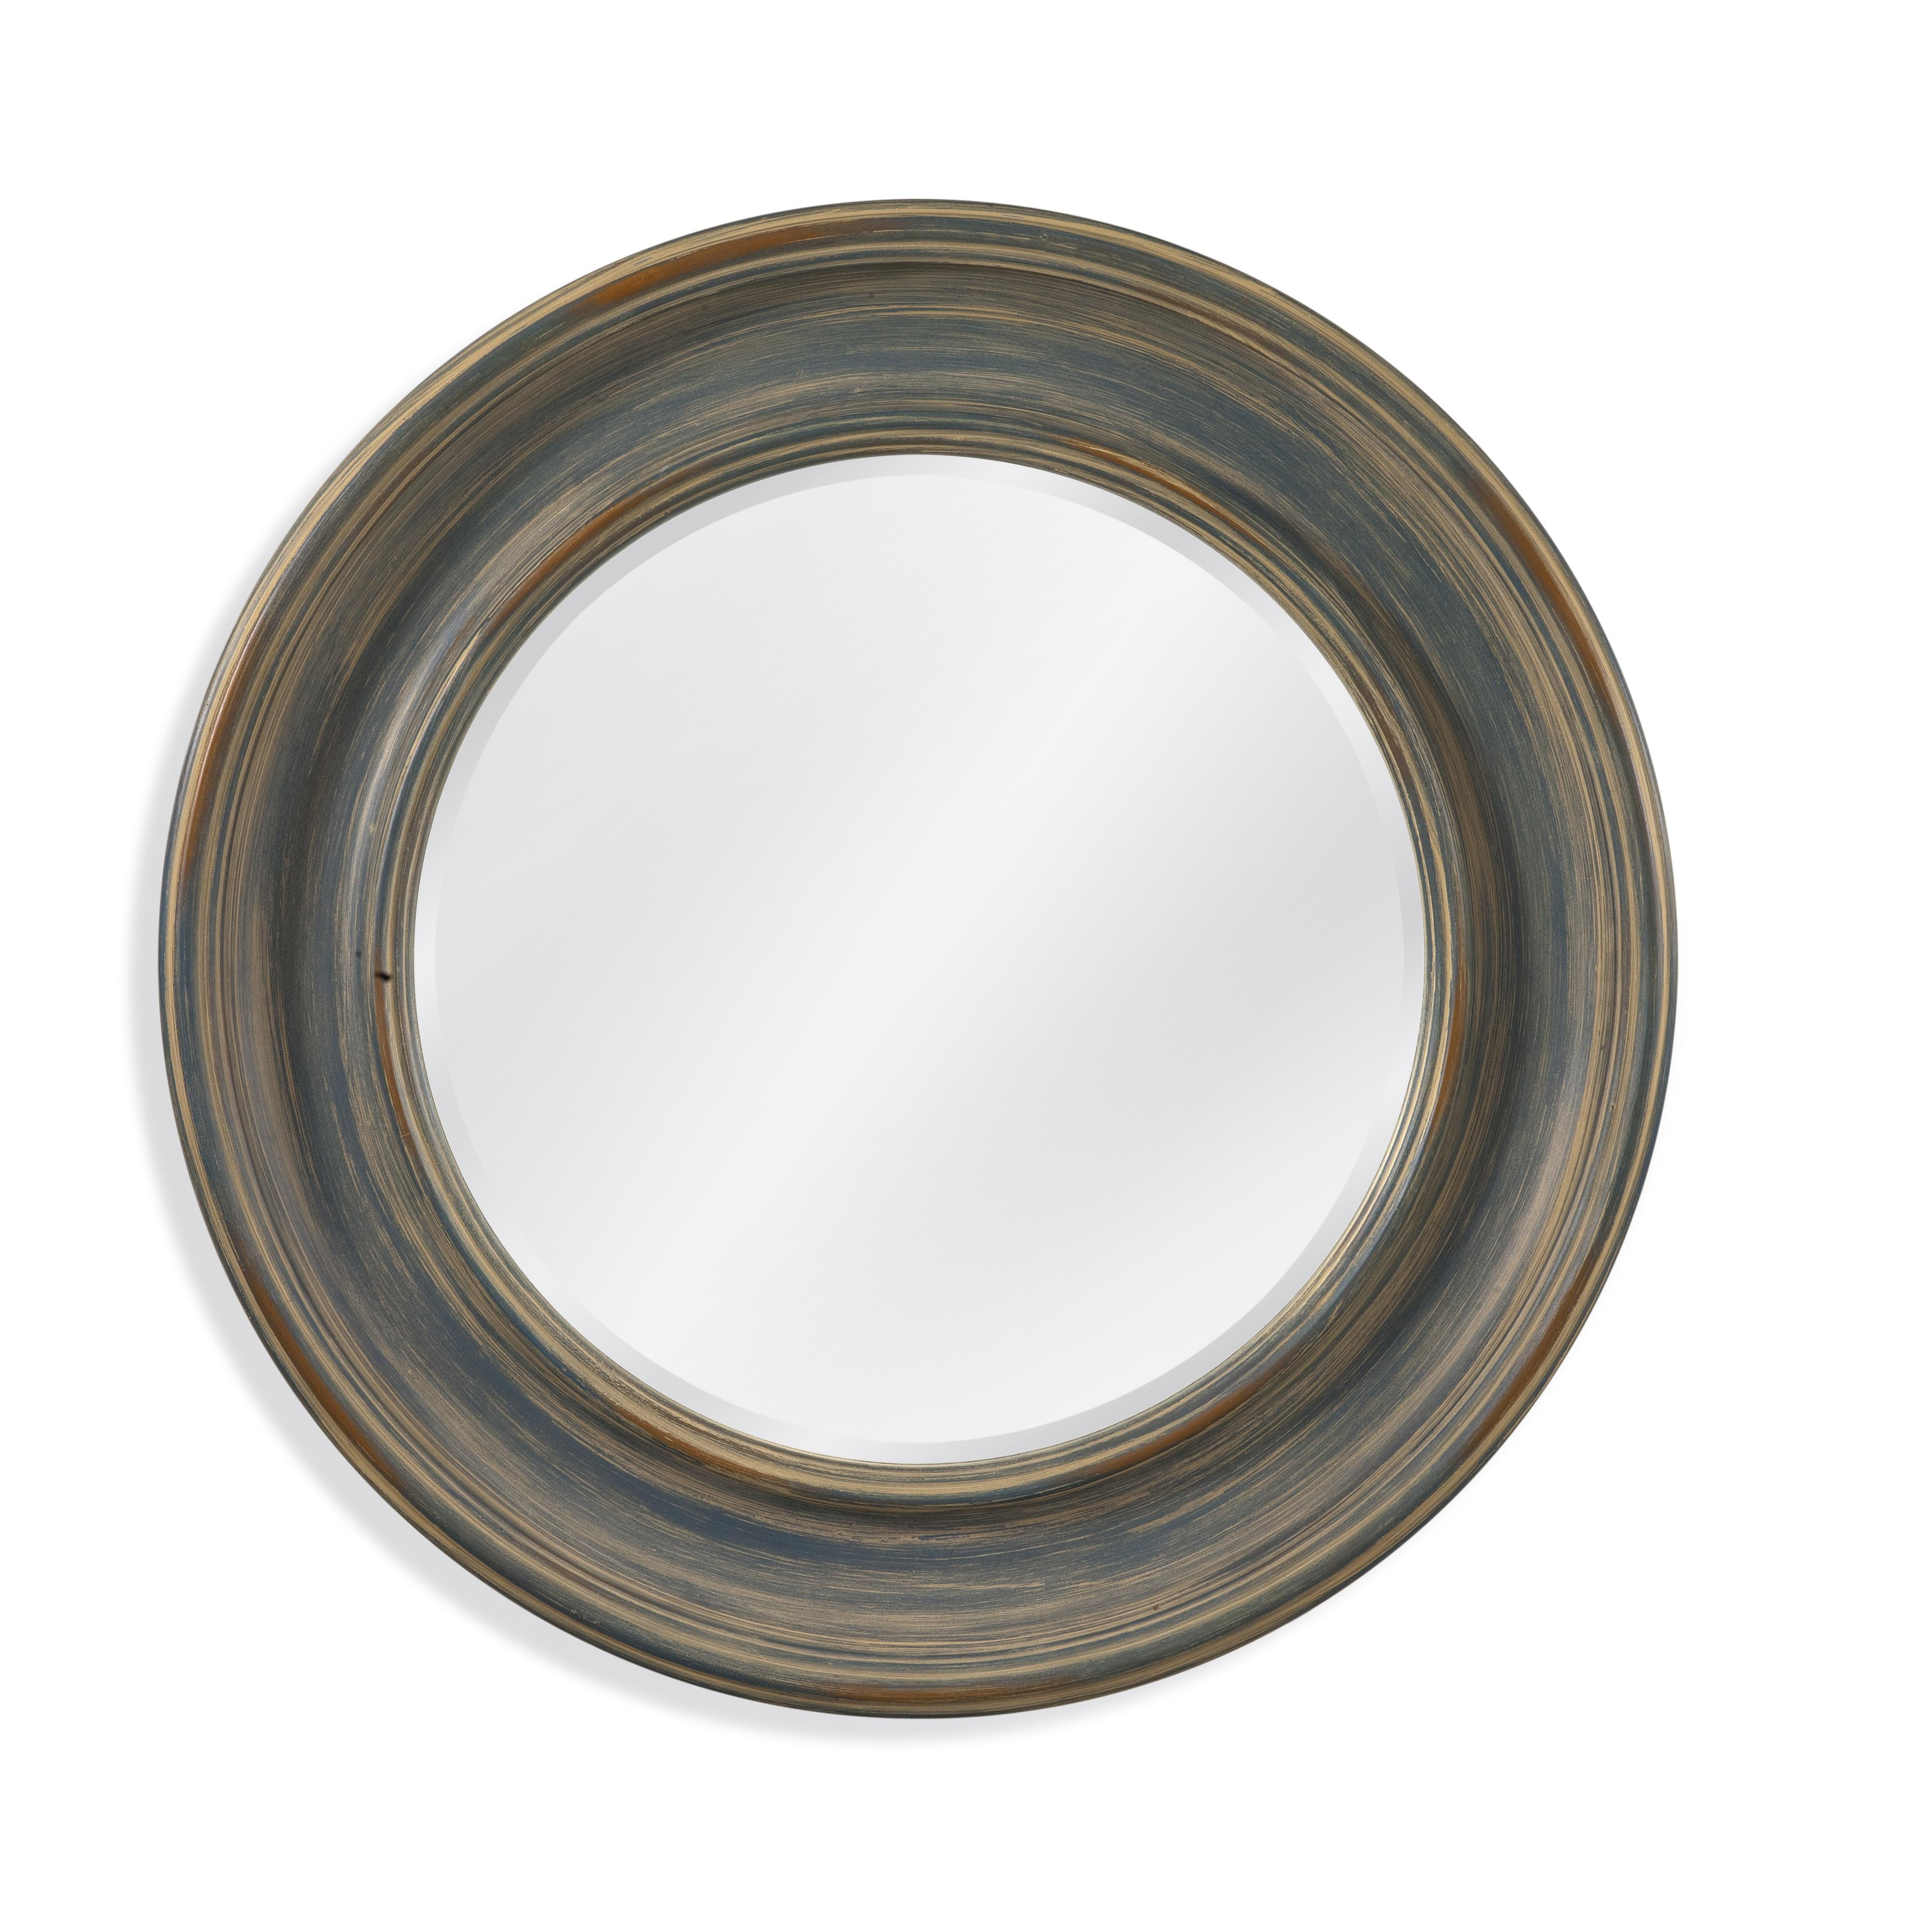 Belgian Luxe Ranlo Wall Mirror by Bassett Mirror at Alison Craig Home Furnishings